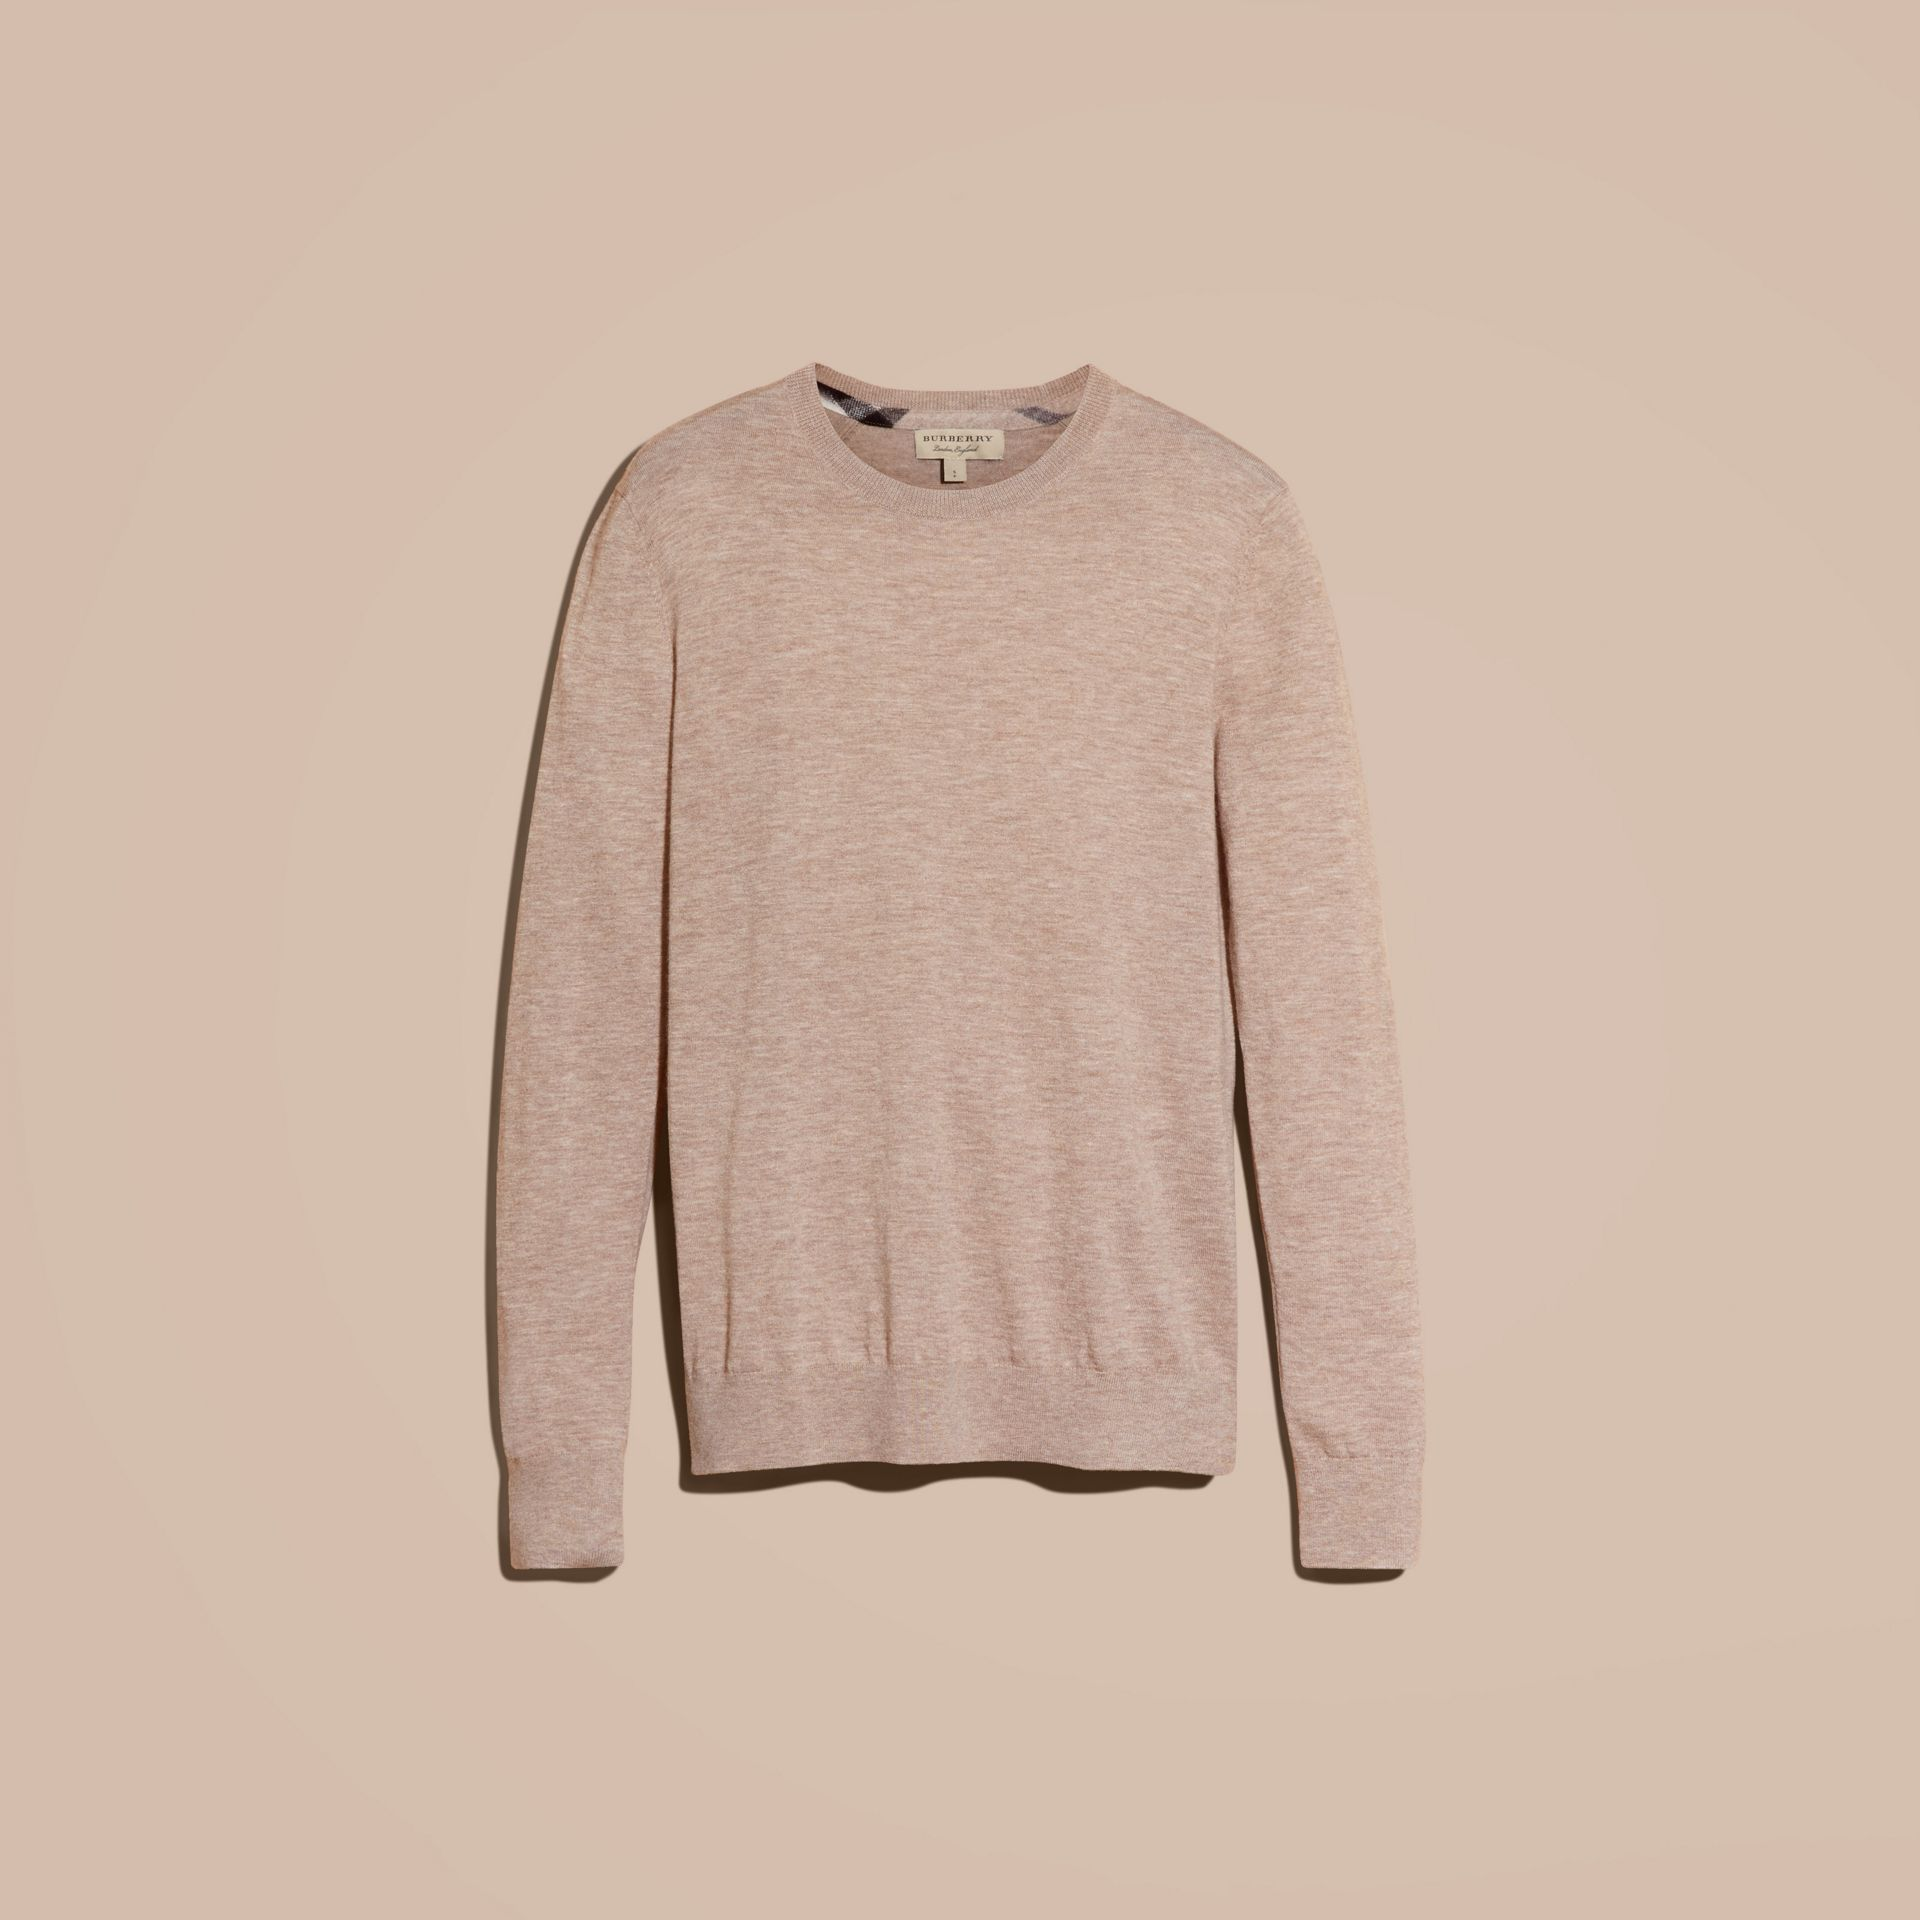 Lightweight Crew Neck Cashmere Sweater with Check Trim Camel Melange - gallery image 4